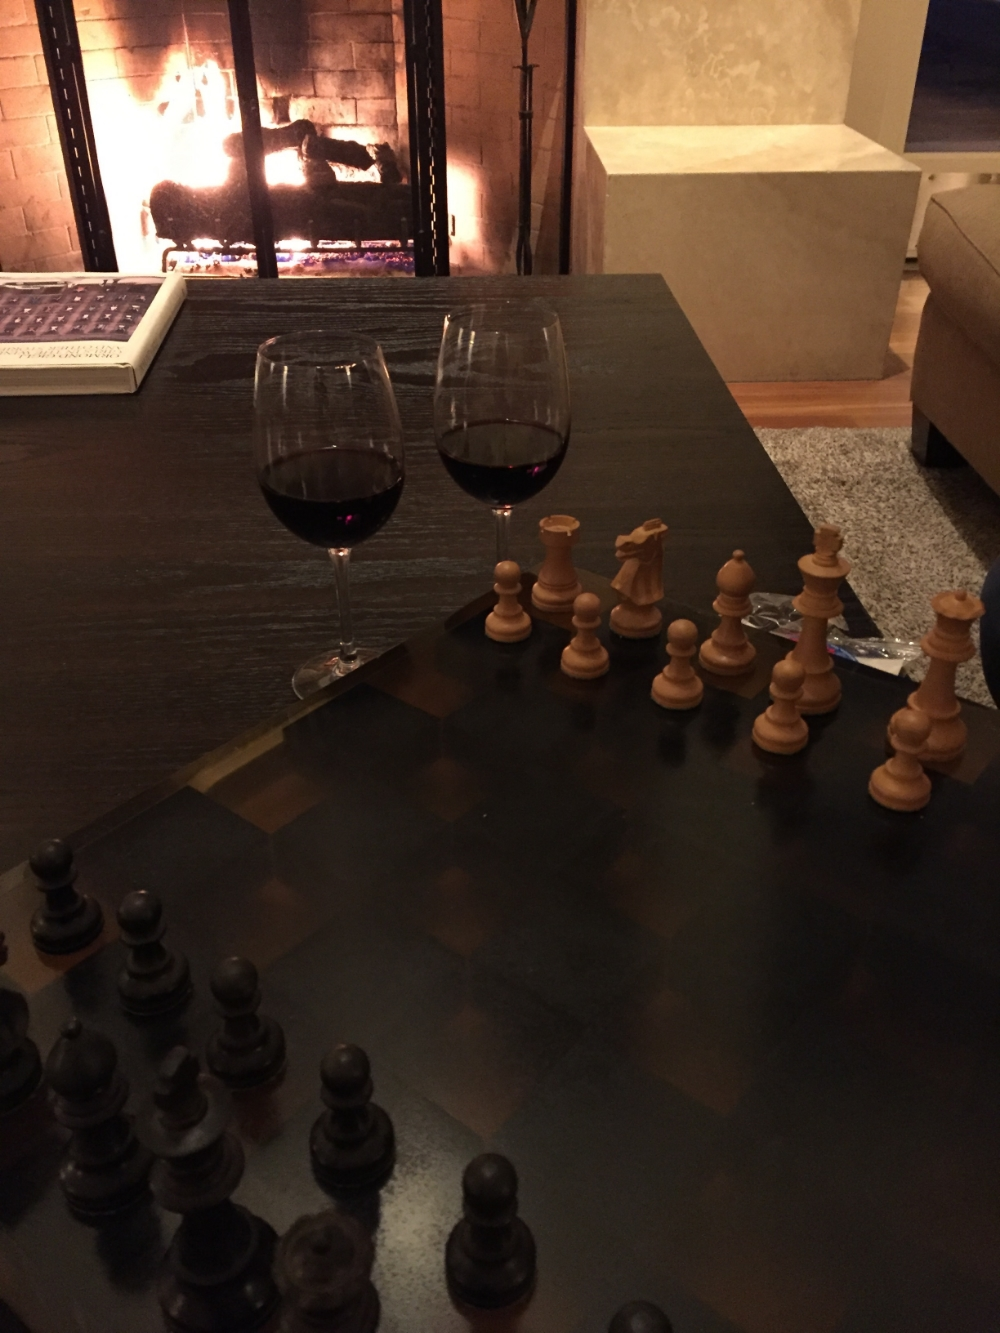 A game of chess, 2 glasses of wine, and a fireplace. Life's Good.